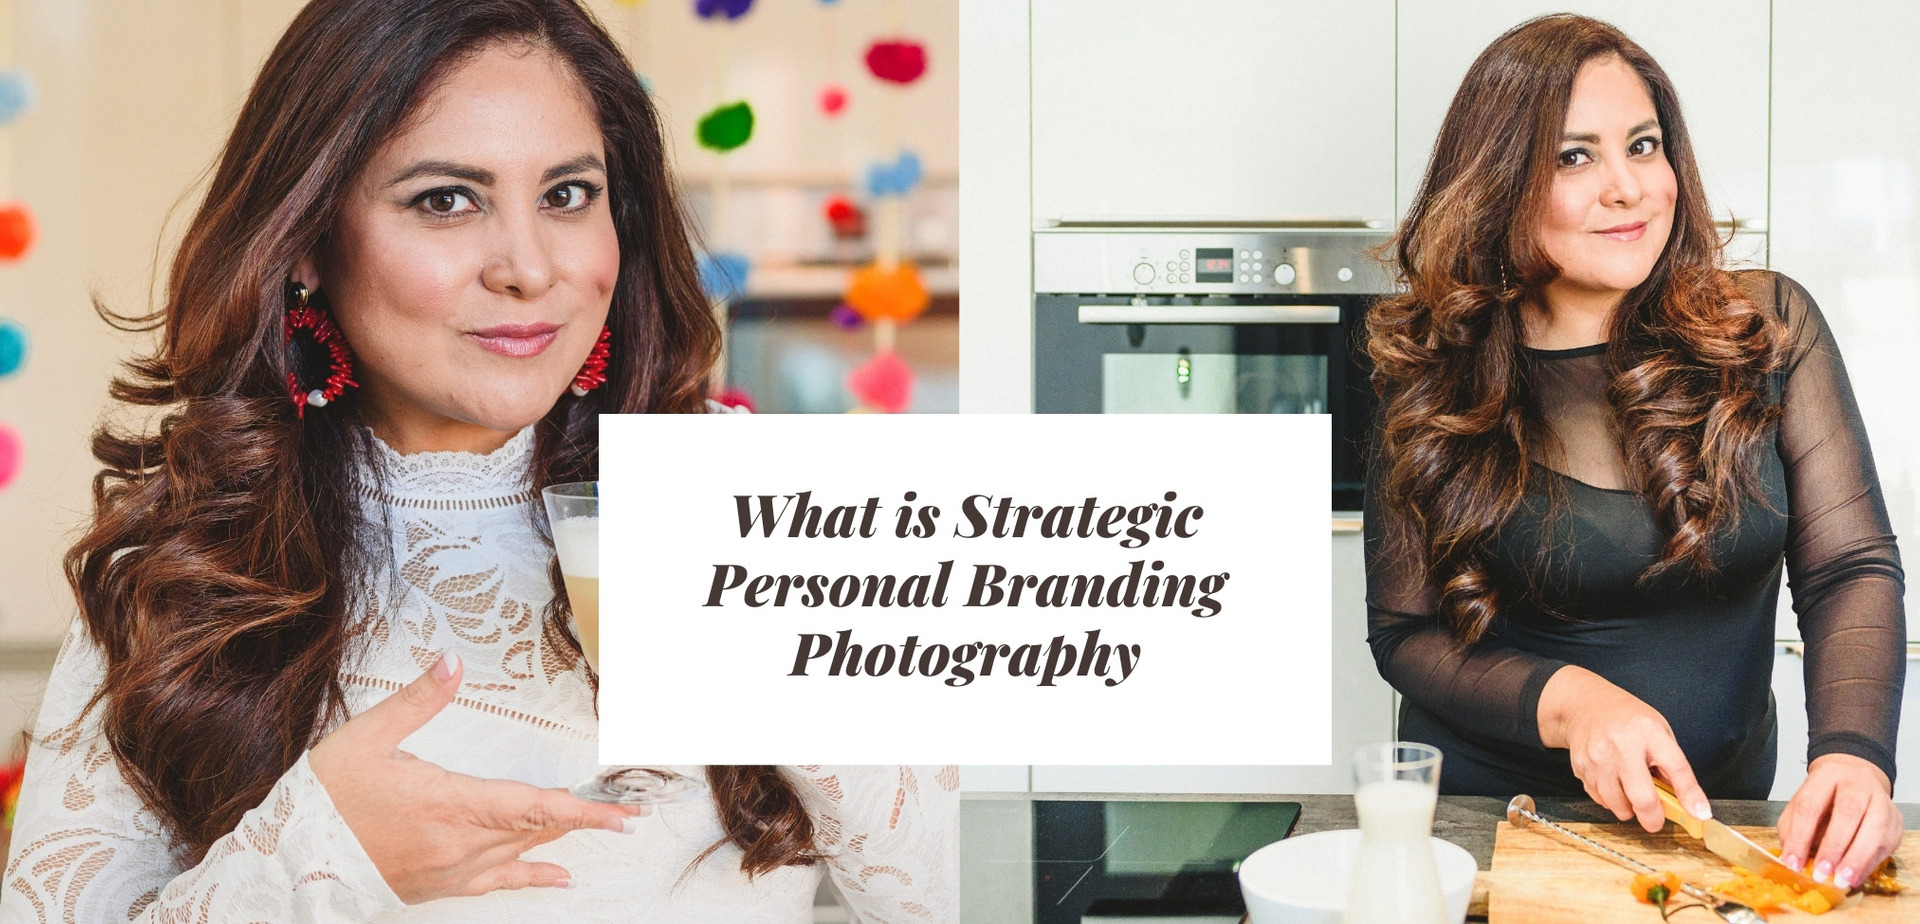 What is Strategic Personal Branding Photography?